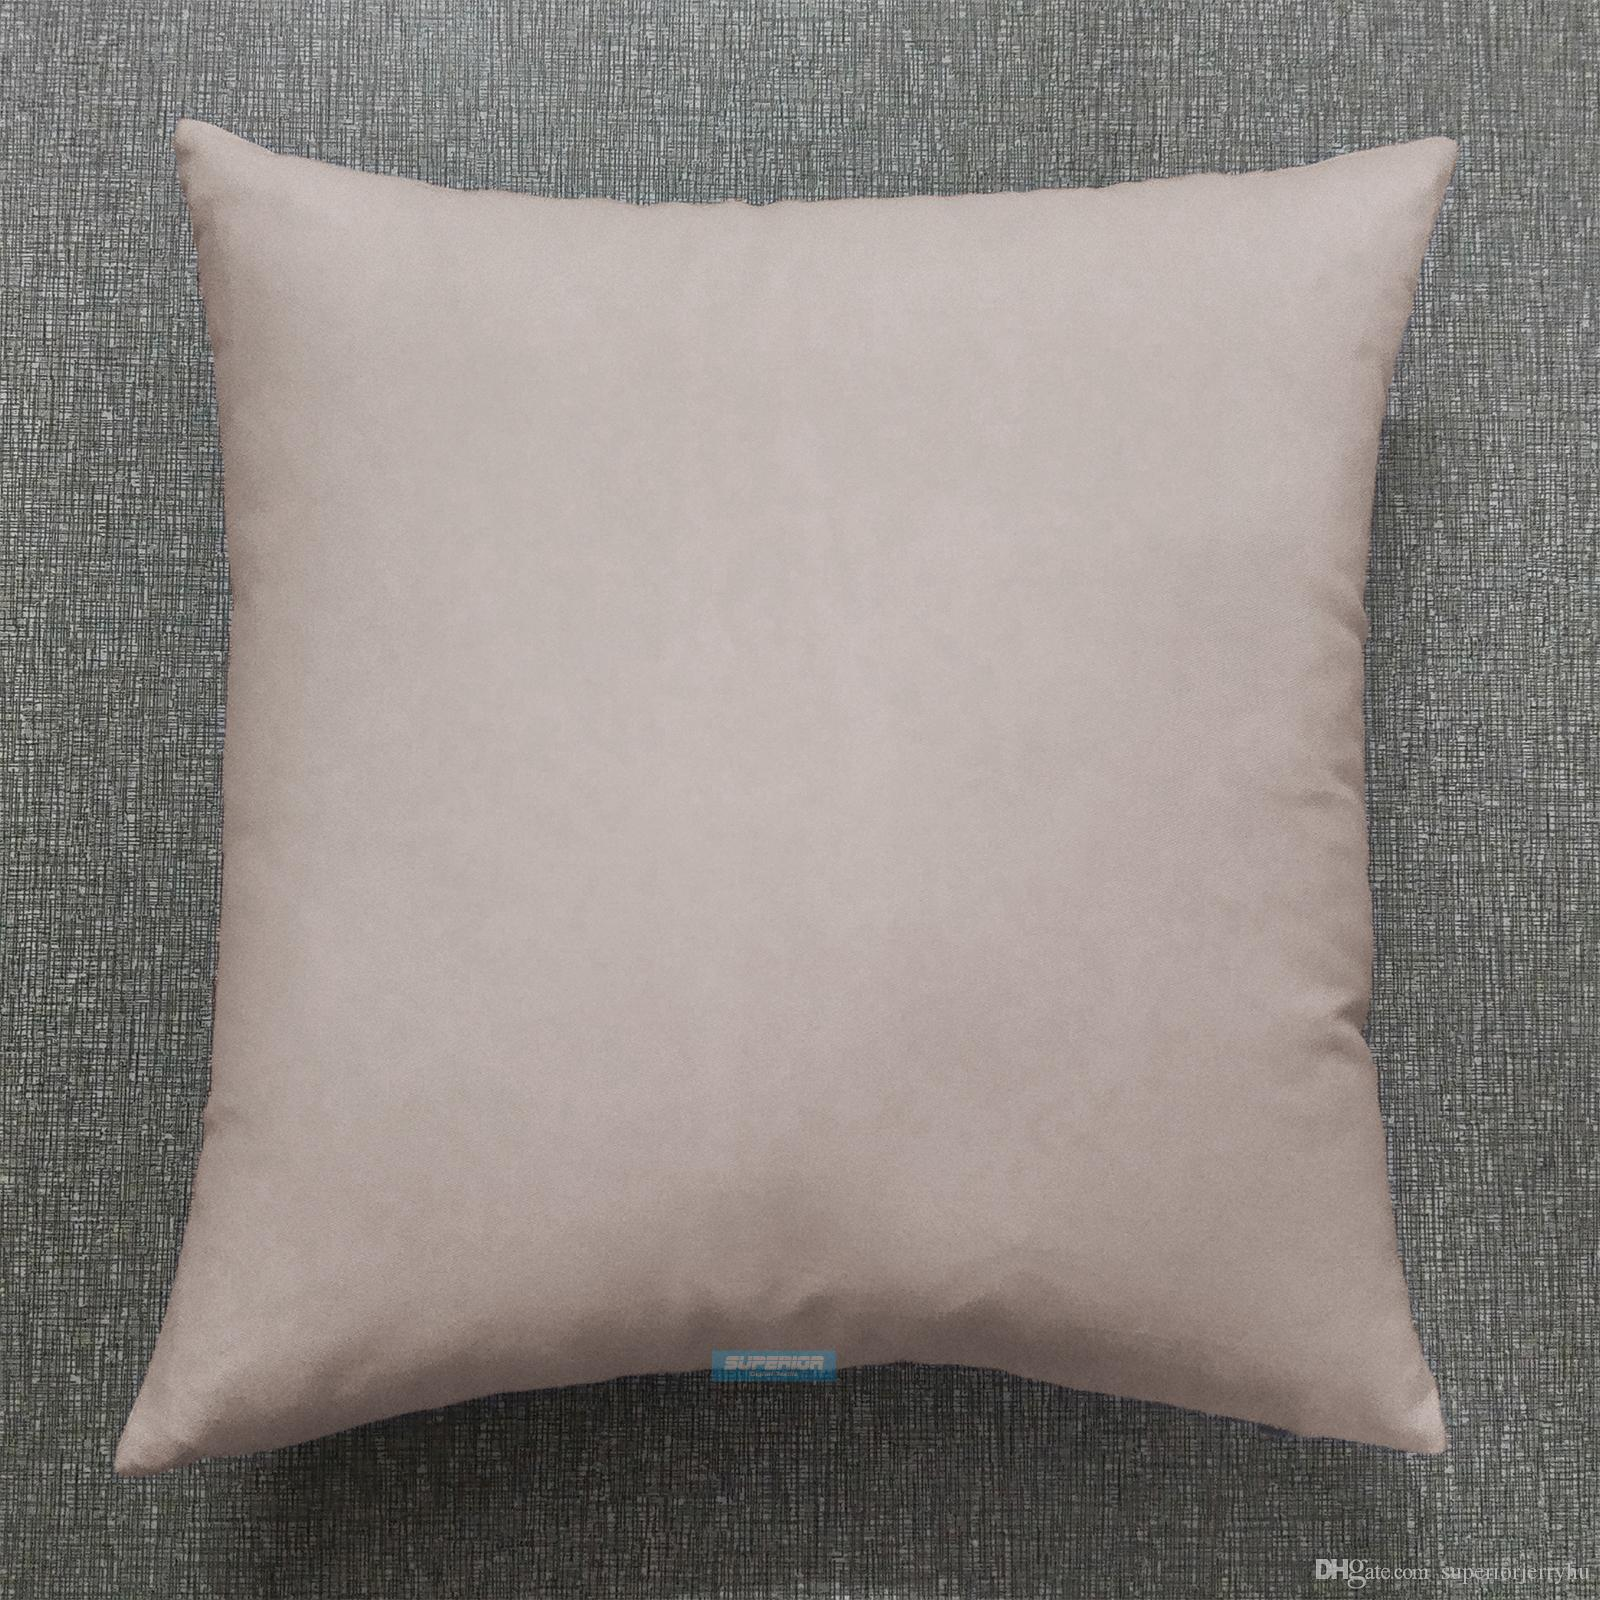 16x16 Inches Cotton Twill Pillow Cover Solid Natural White